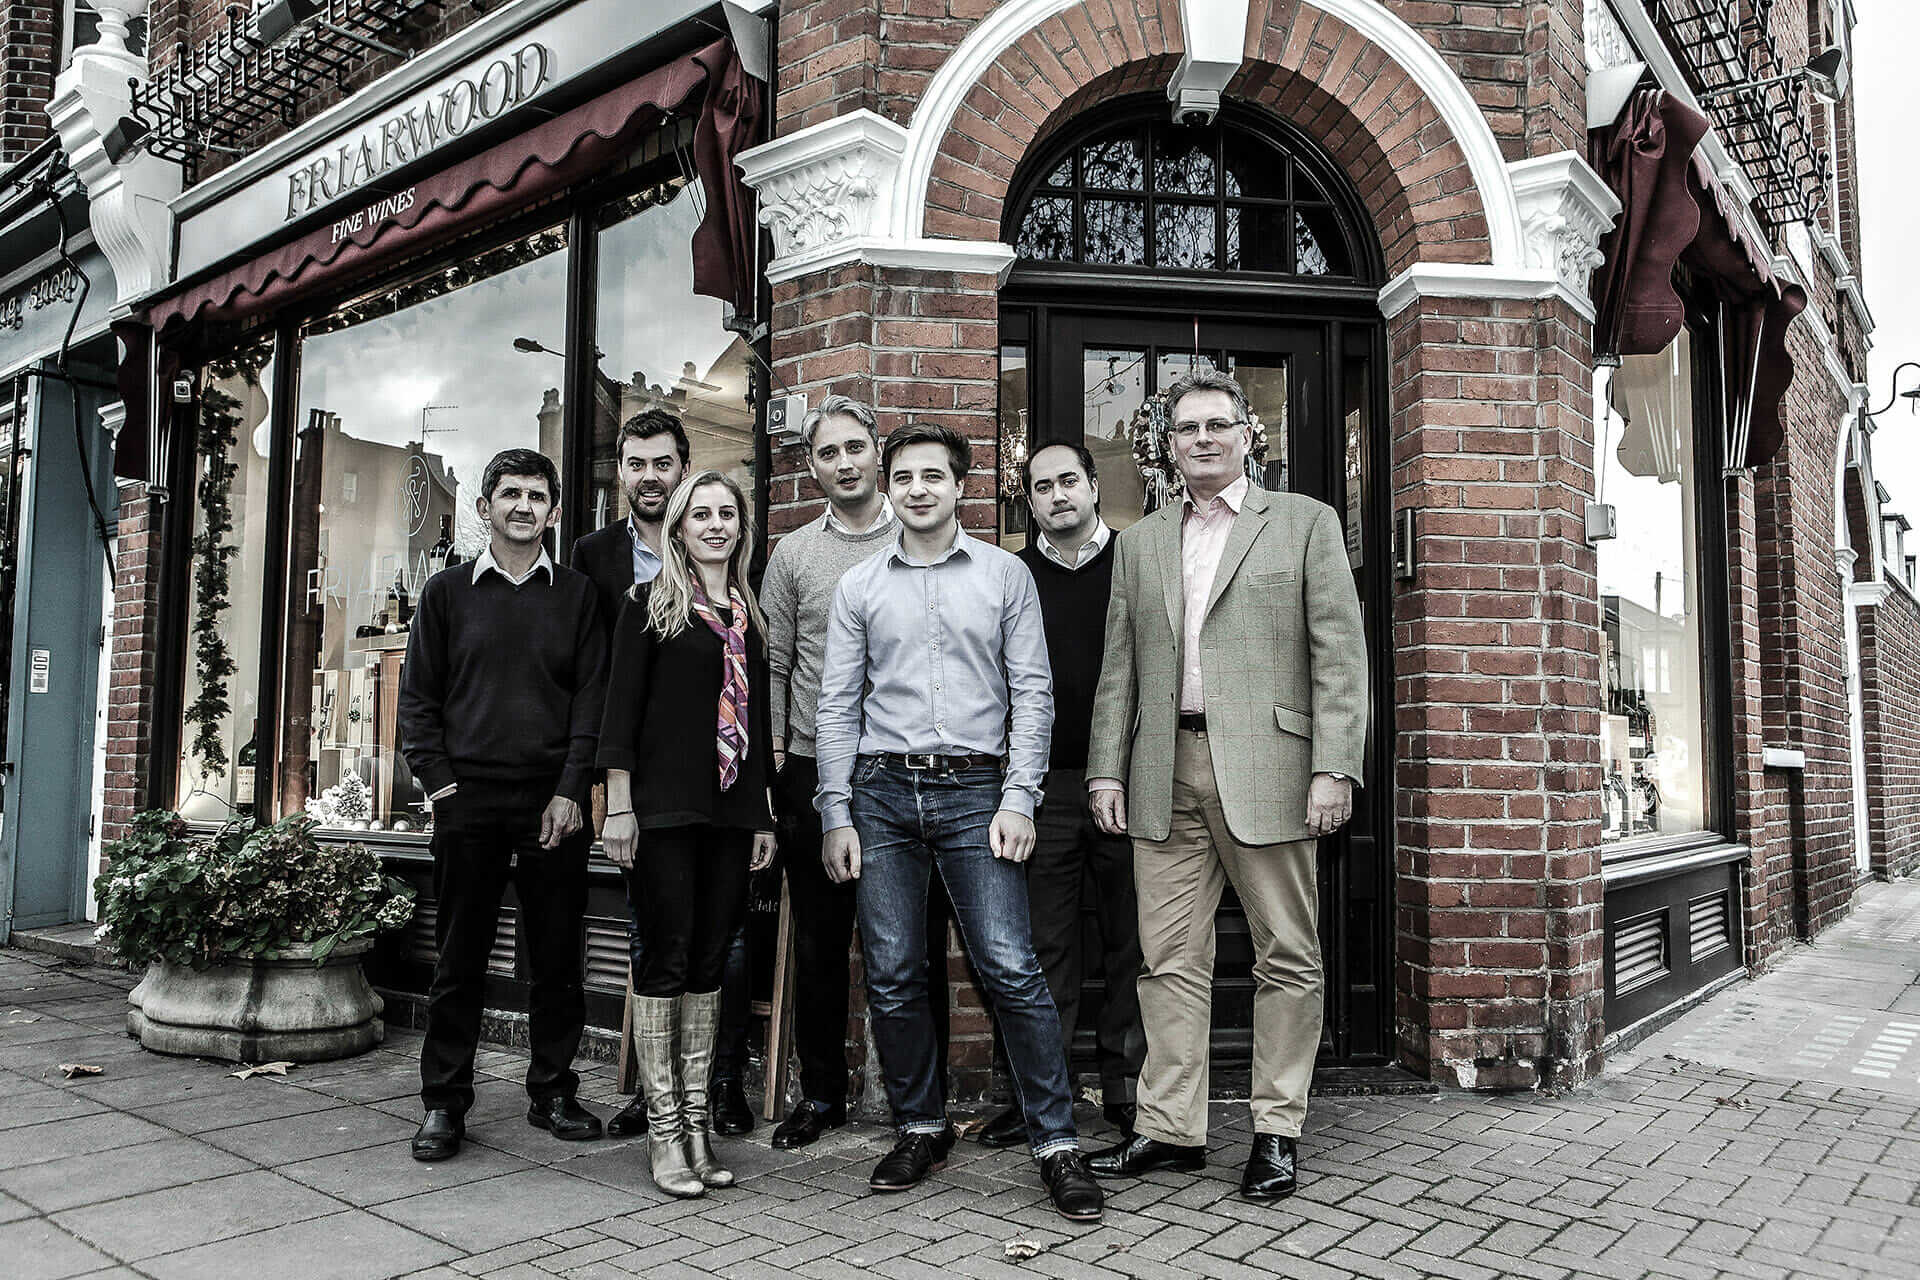 The Friarwood team are seen outside their store in London, the UK